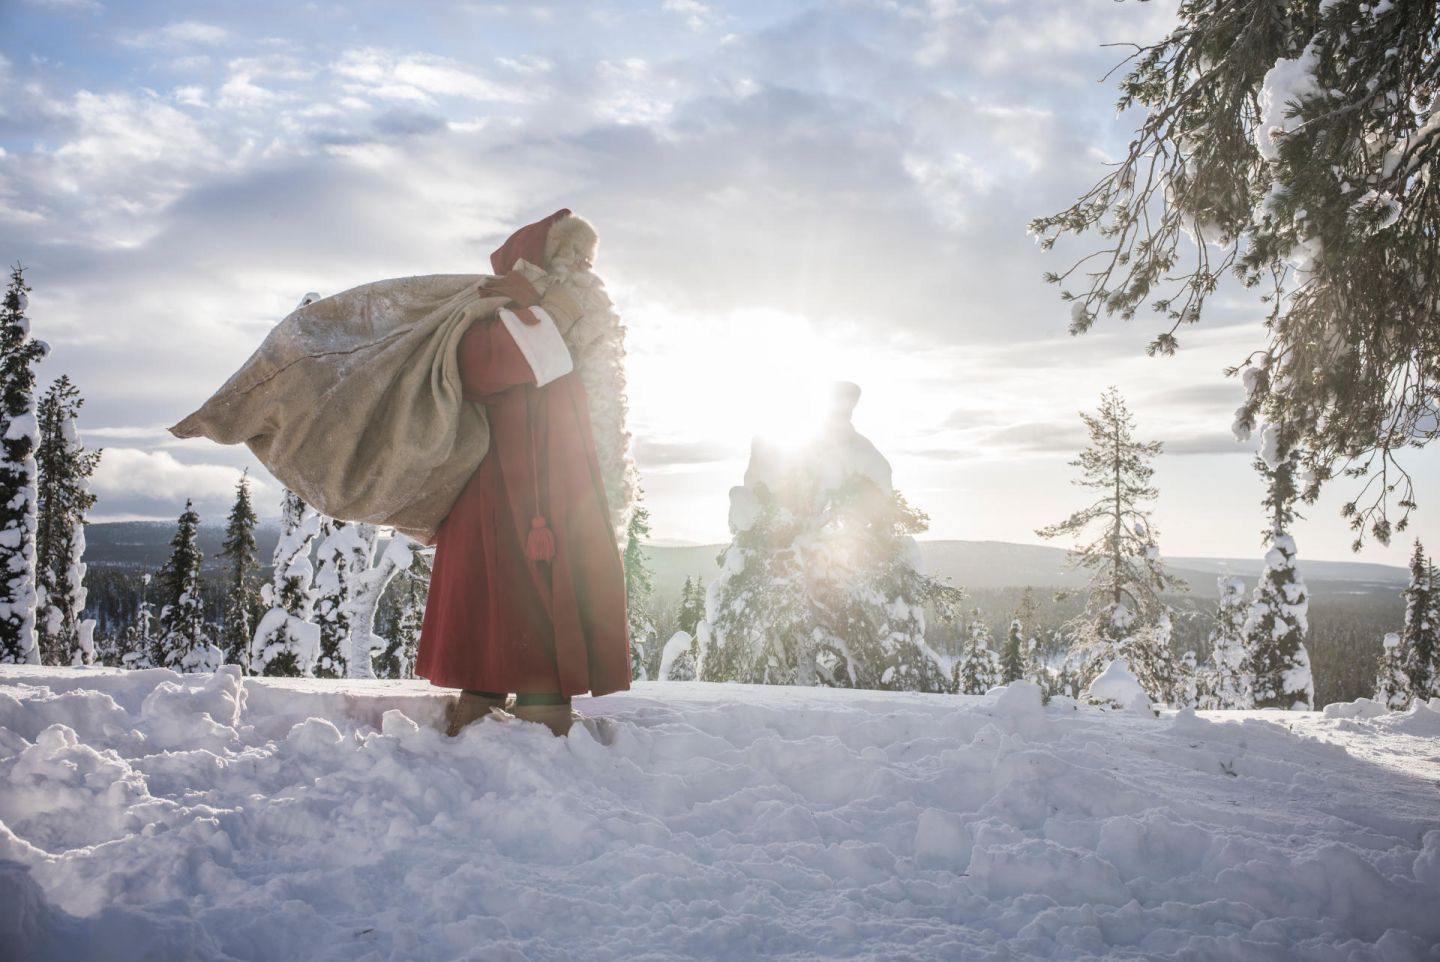 Santa carries a sack of letters and gifts in Finnish Lapland